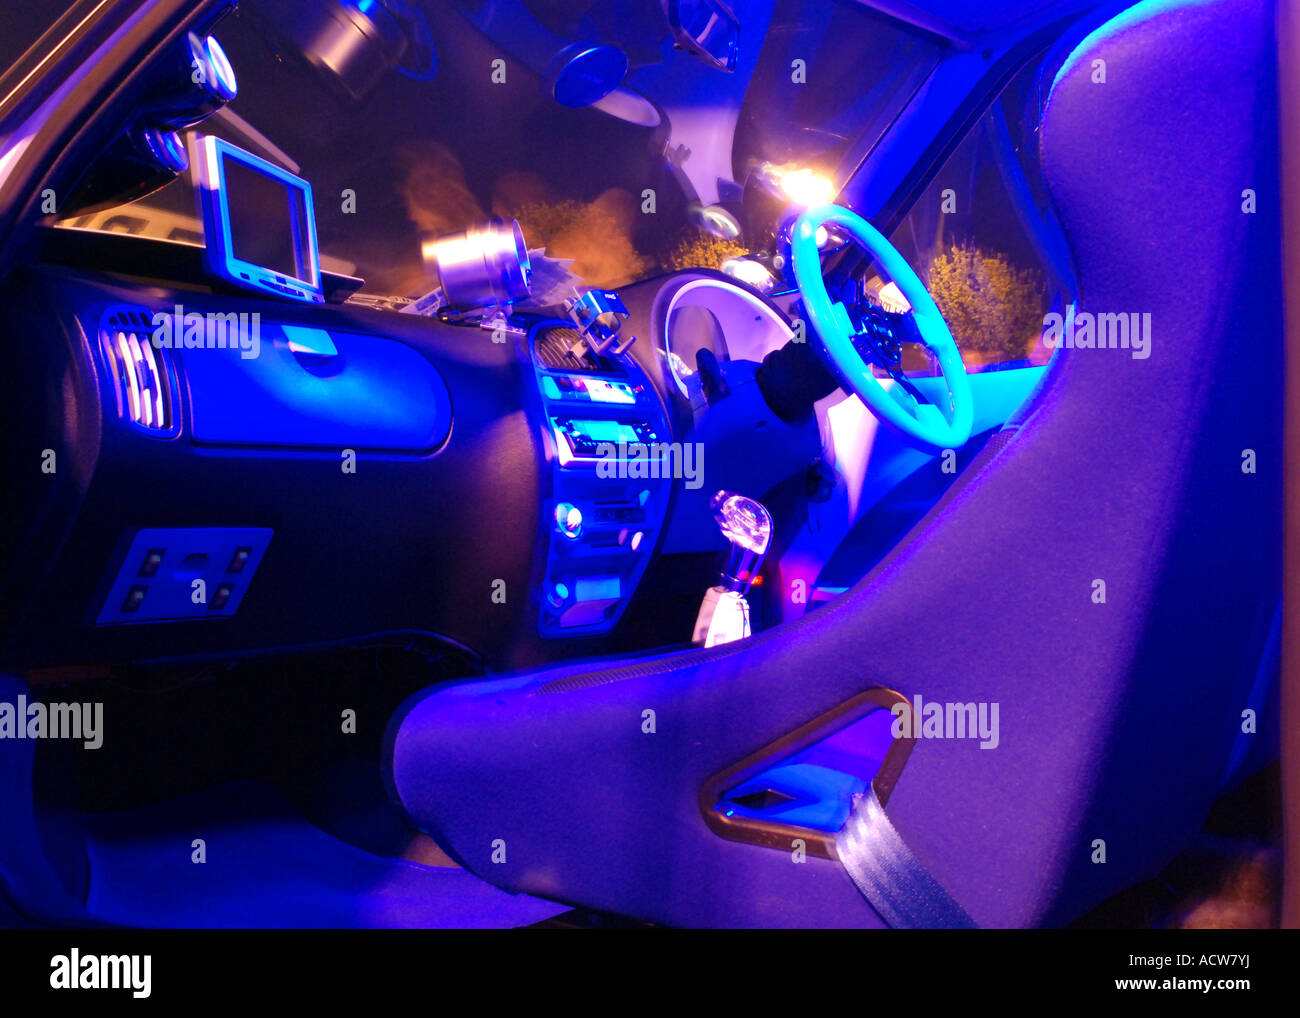 customized car interior with neon stock photo 13233461 alamy. Black Bedroom Furniture Sets. Home Design Ideas